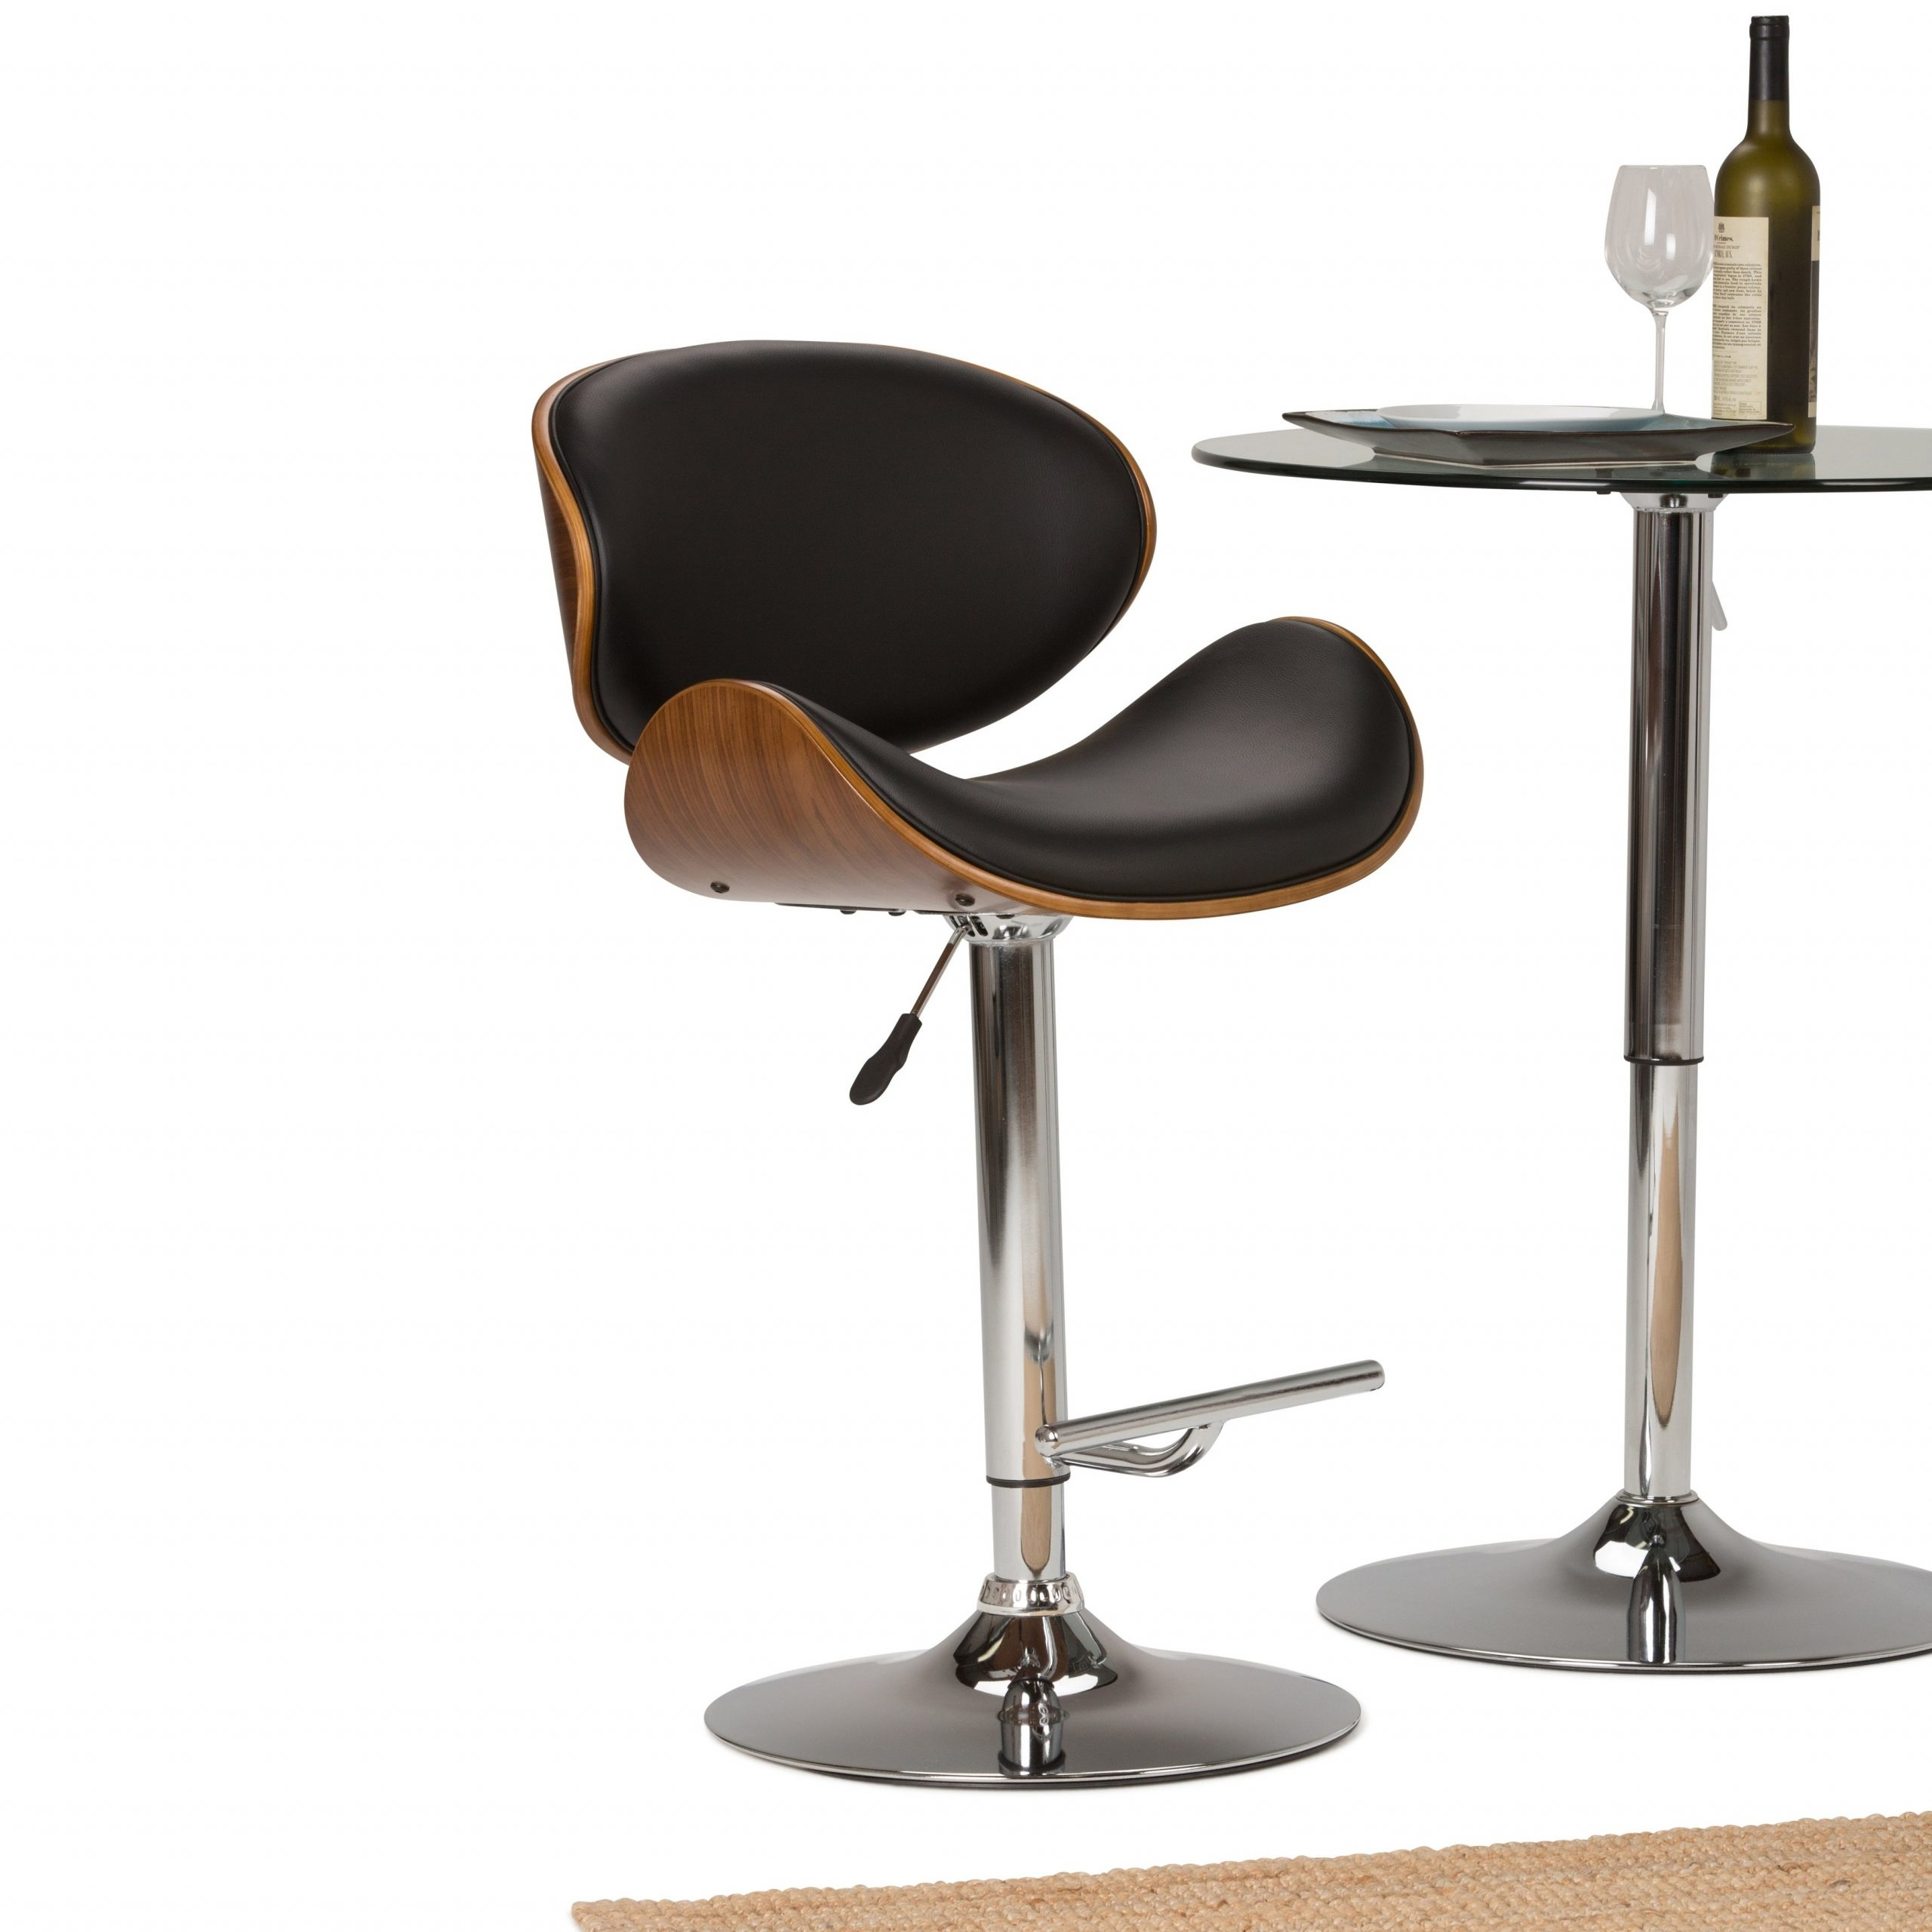 Wyndenhall Avondale Mid Century Modern Bentwood Adjustable Height Gas Lift Bar Stool – 21 W X 20 D X 45 H Throughout 2017 Avondale Counter Height Dining Tables (View 24 of 25)